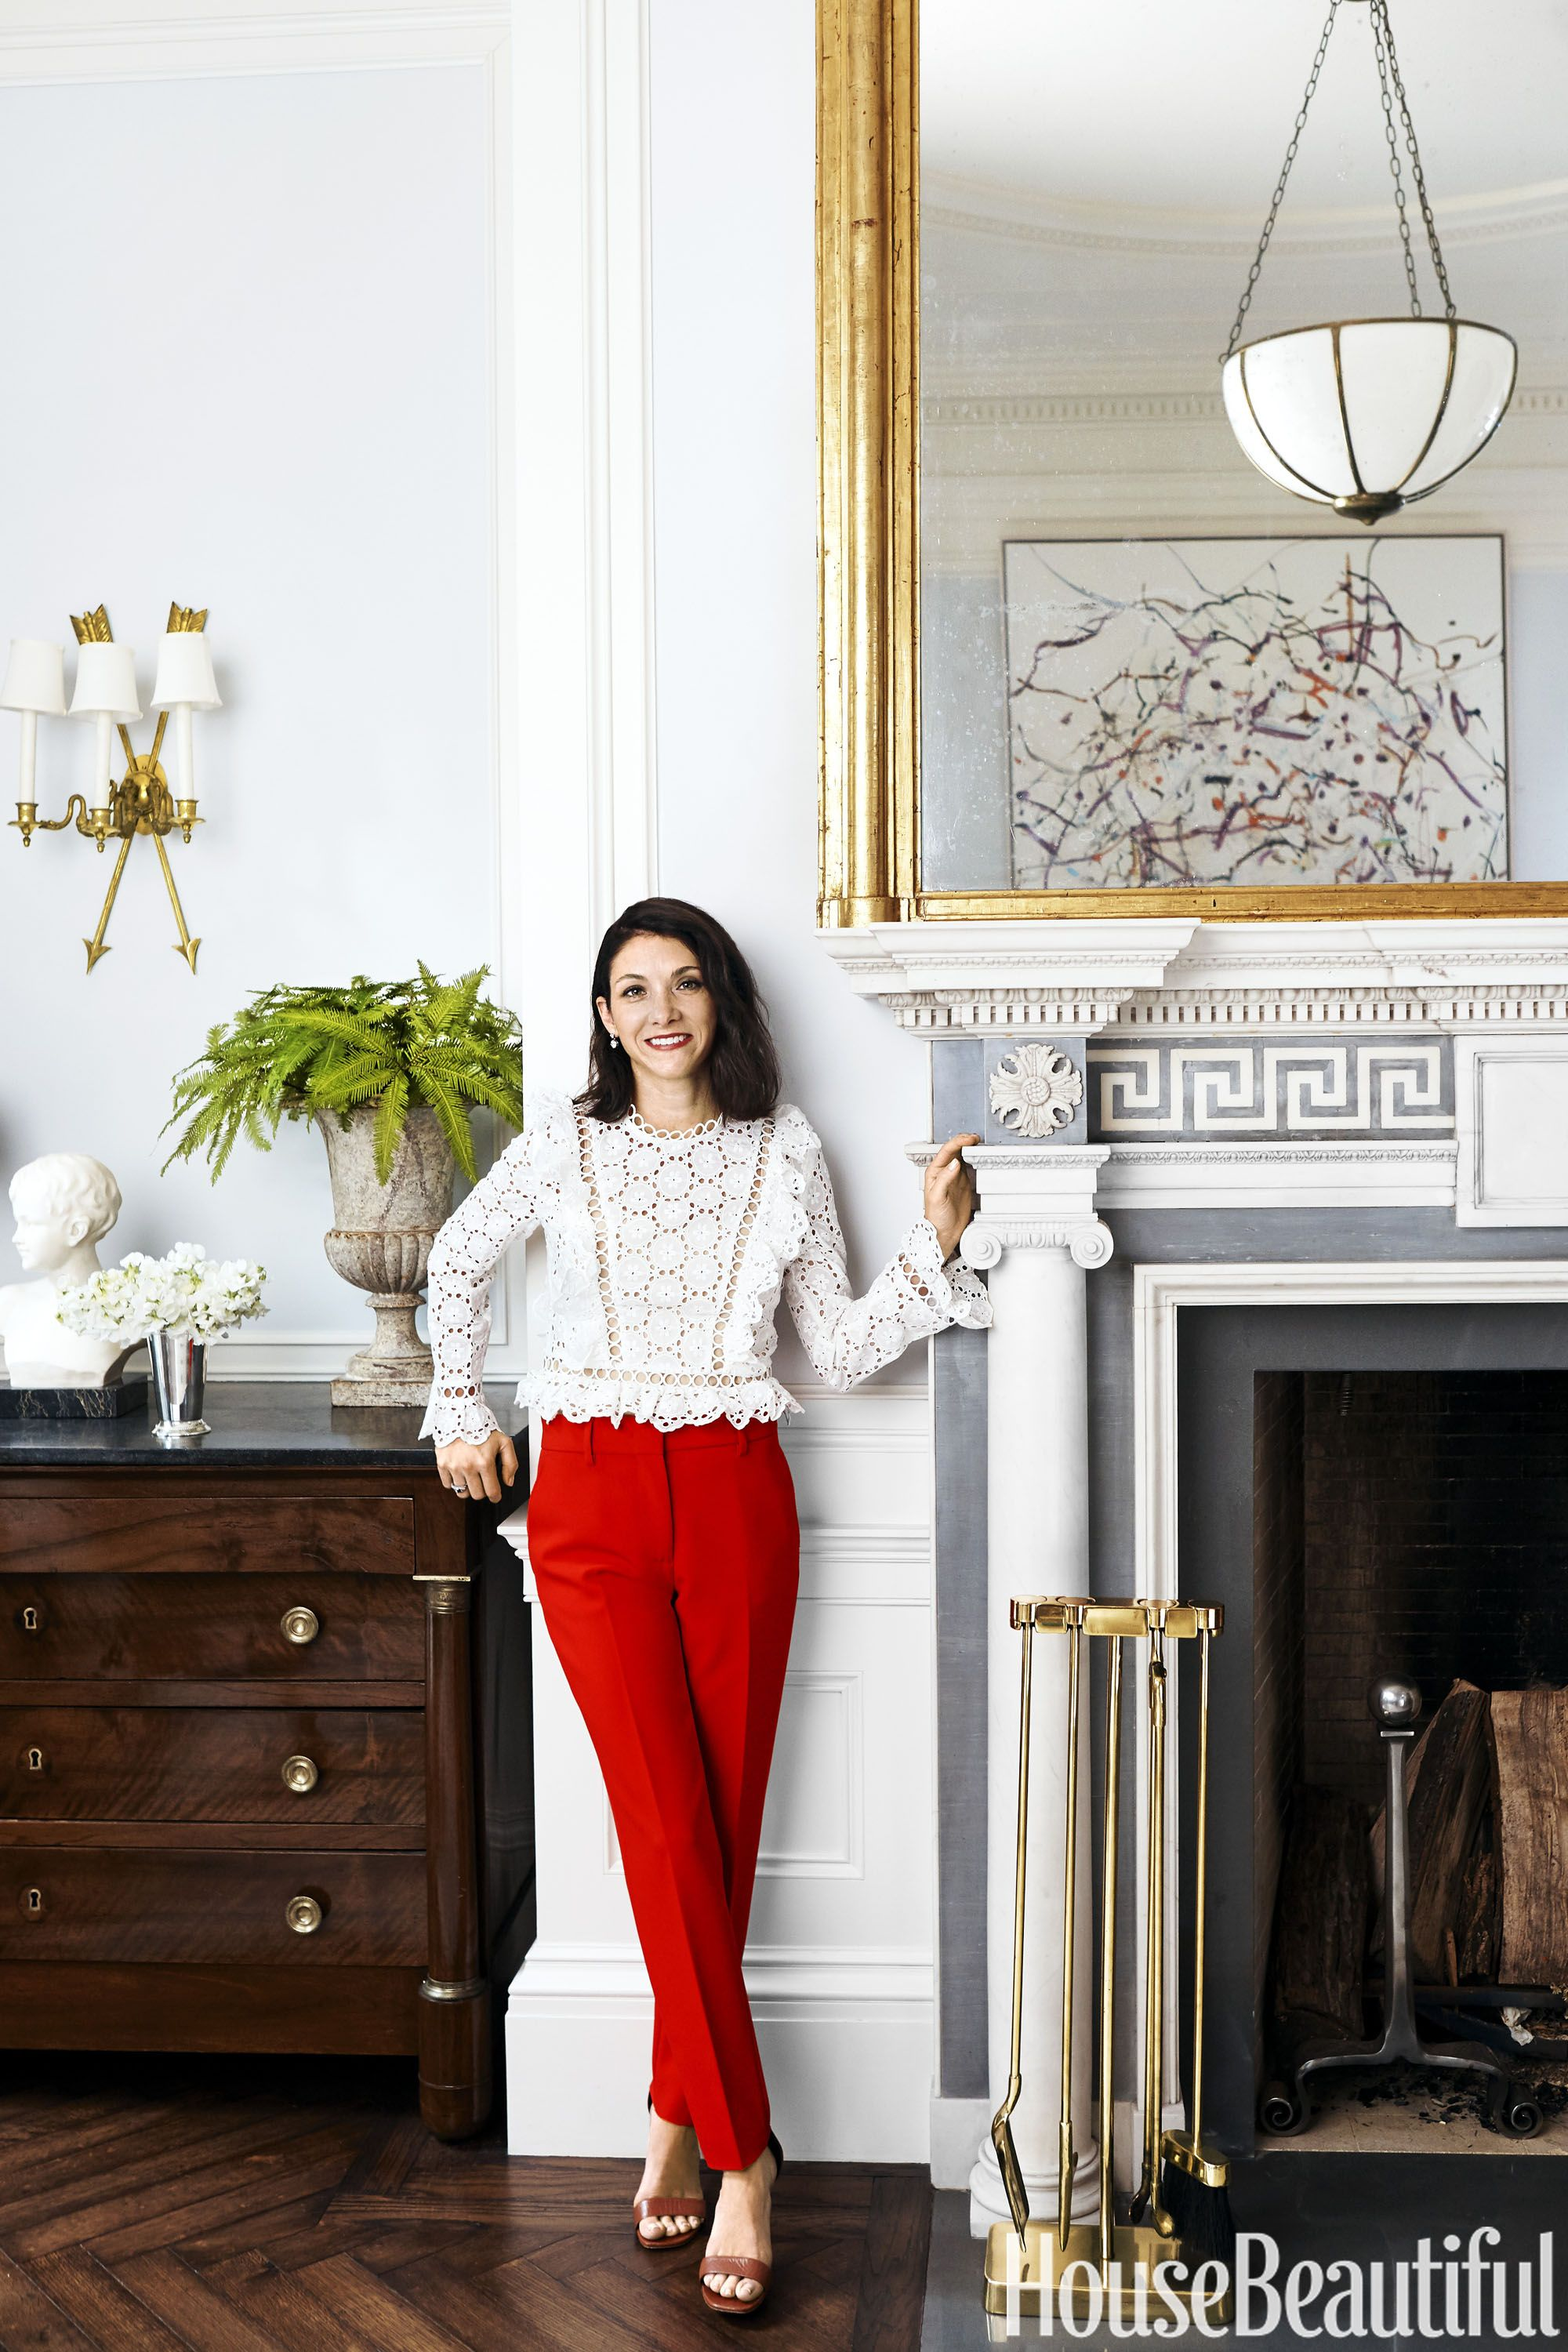 This Designer's Passion for Interiors Started by Paying Close Attention to Her Neighbors